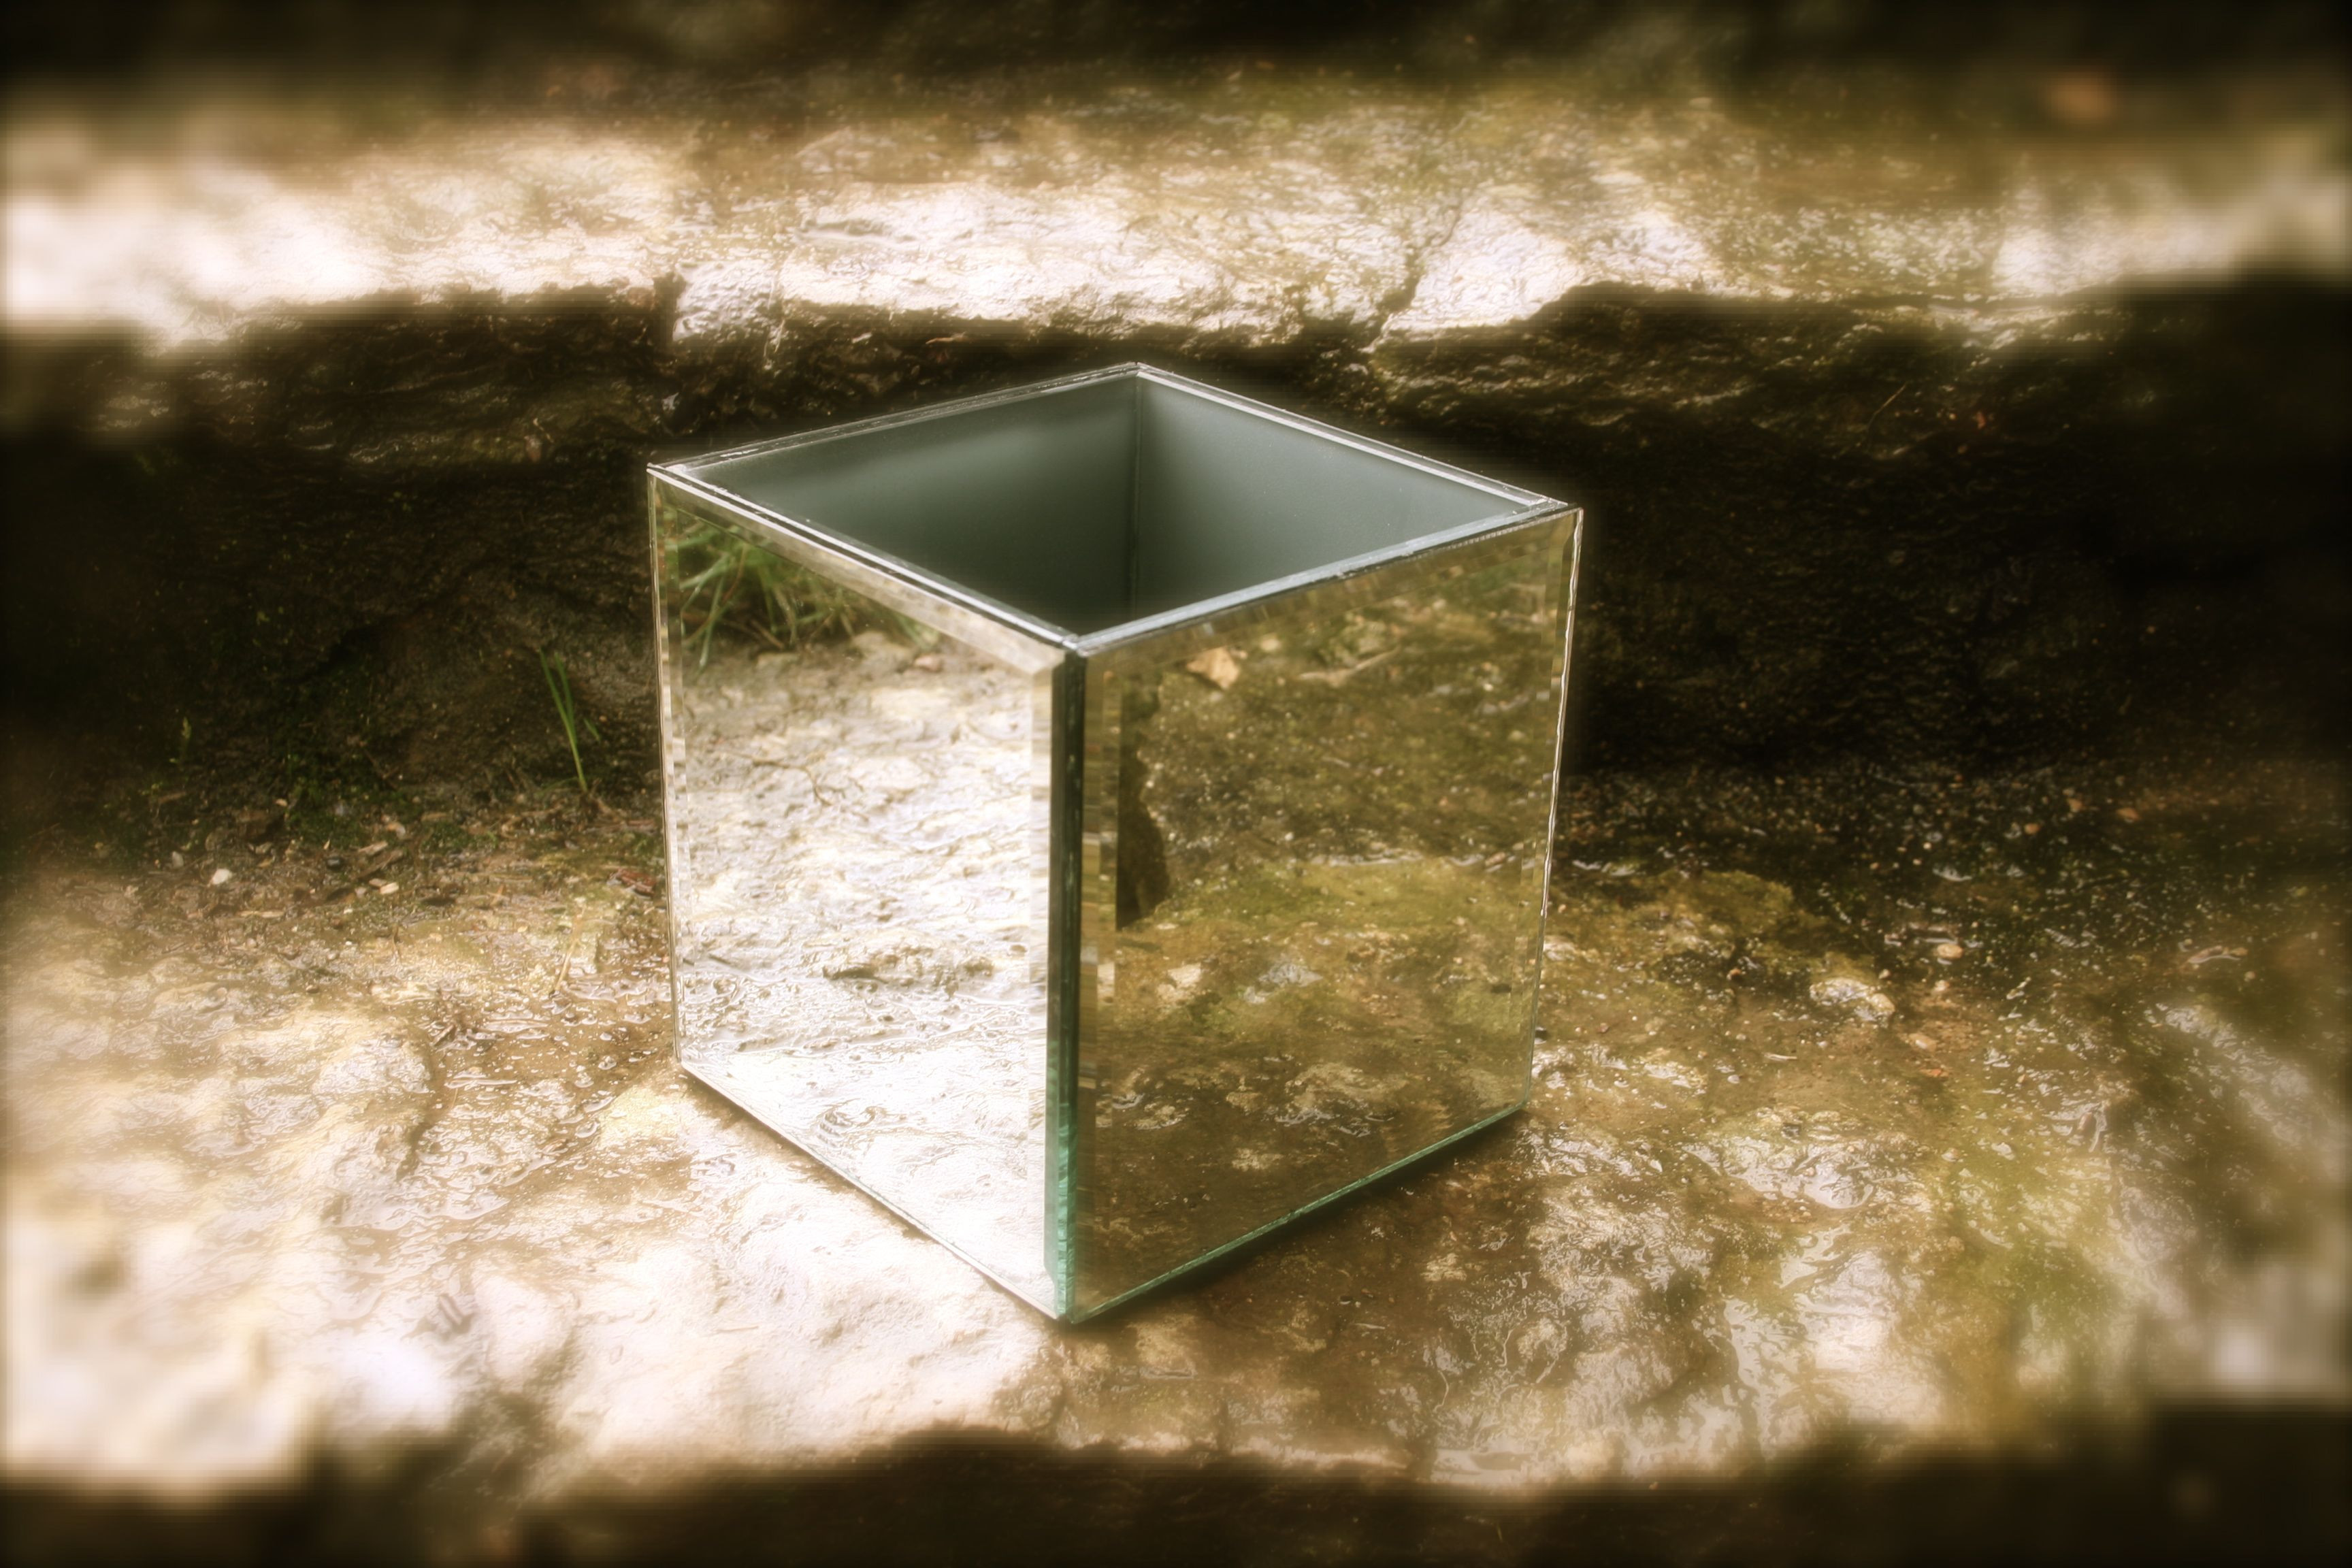 6 cube vase of mirrored cube vases small a3 50 a13 hire deposit 20 inside mirrored cube vases small a3 50 a13 hire deposit